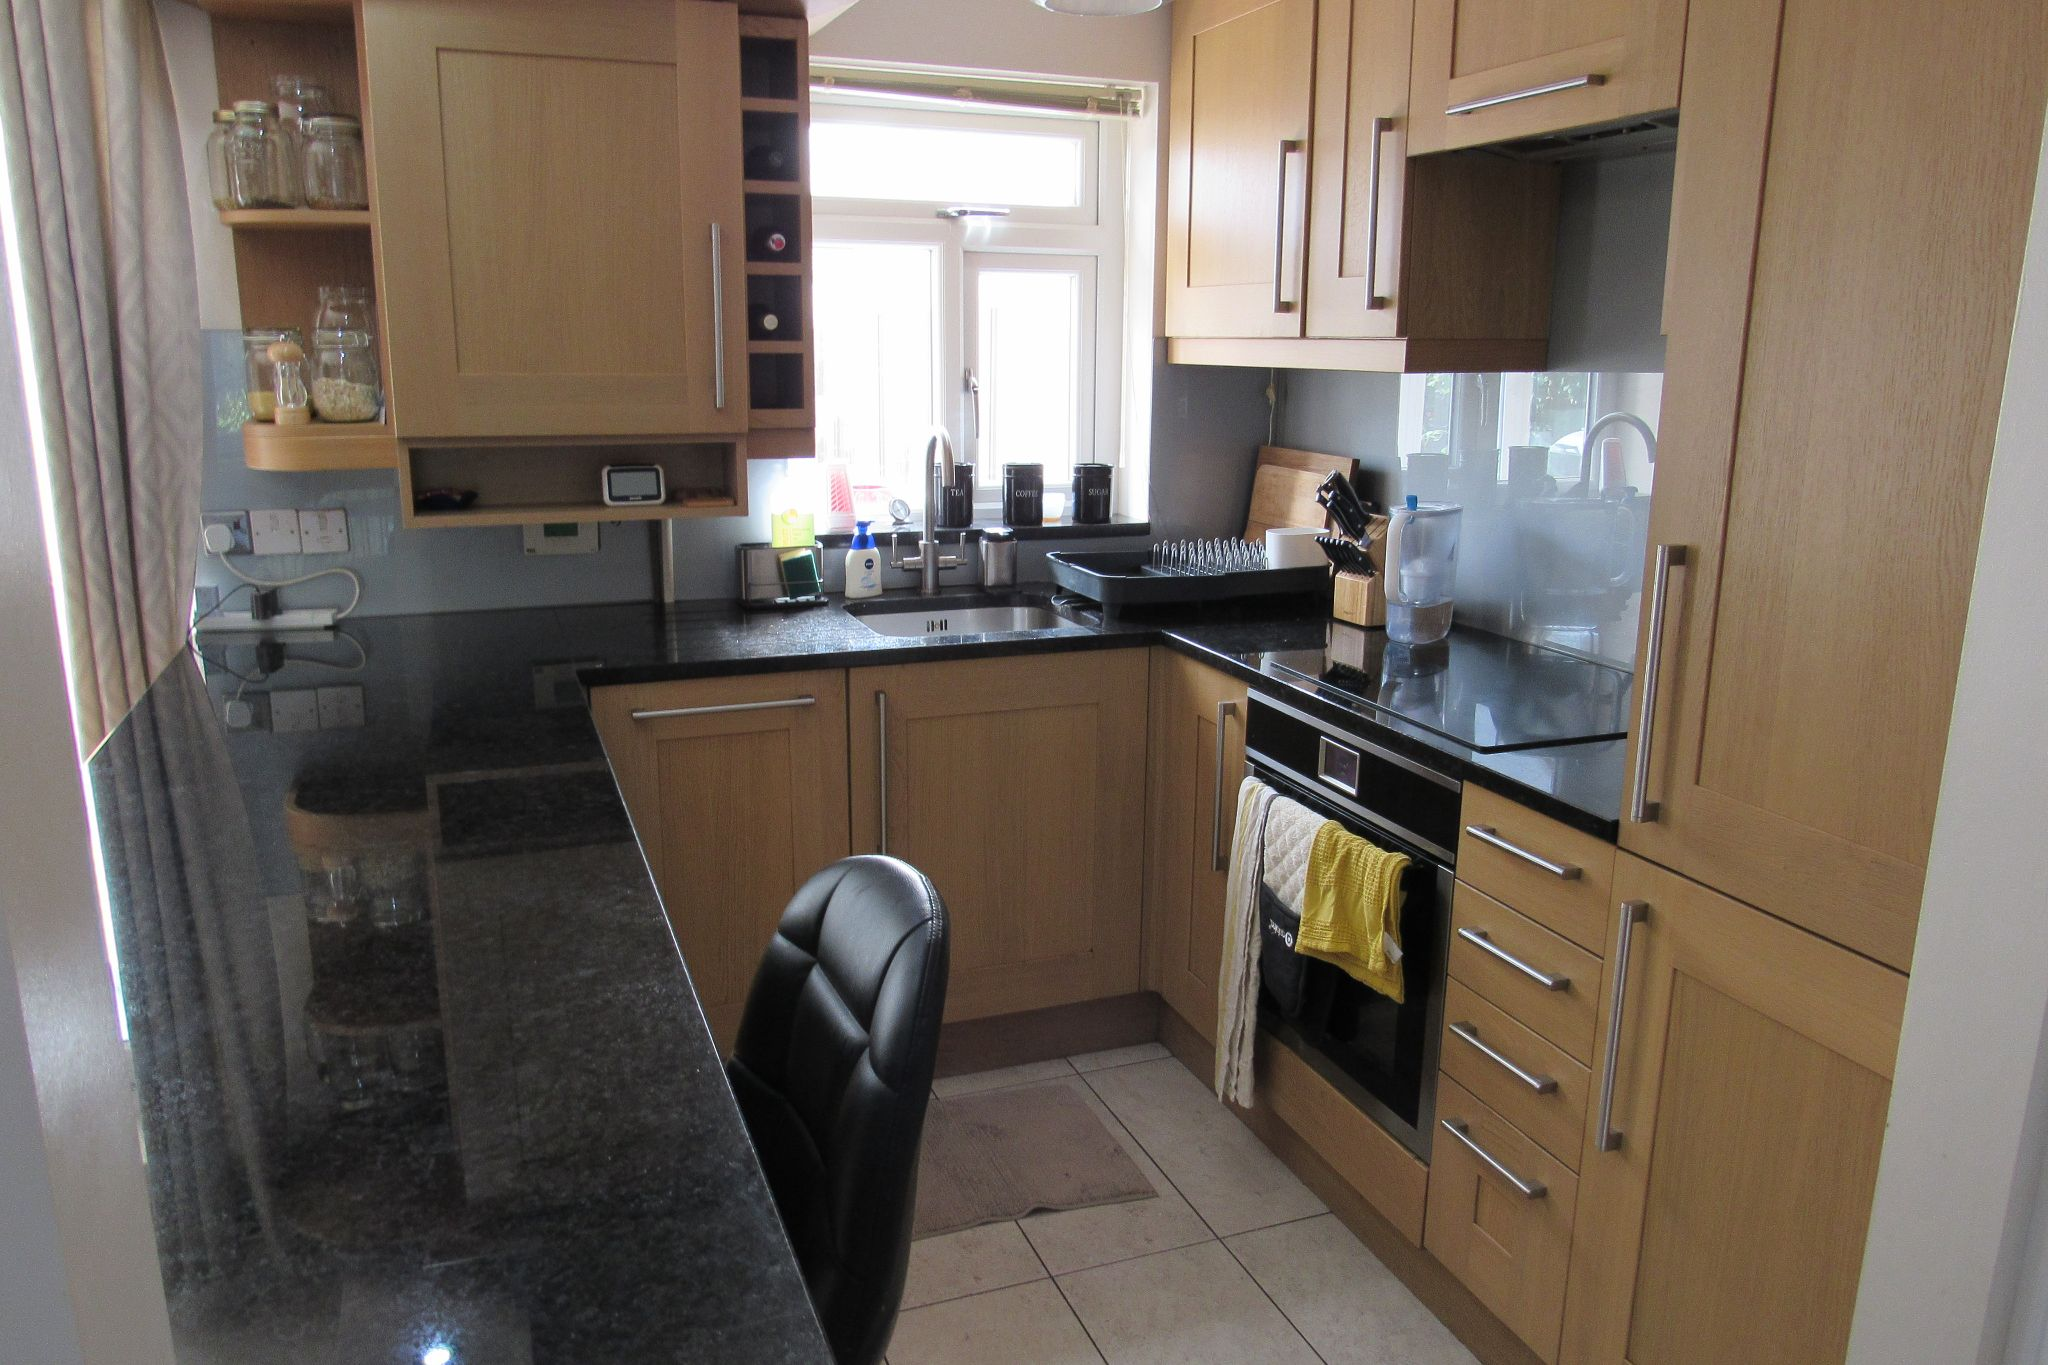 2 bedroom end terraced house Under Offer in Manchester - Photograph 1.